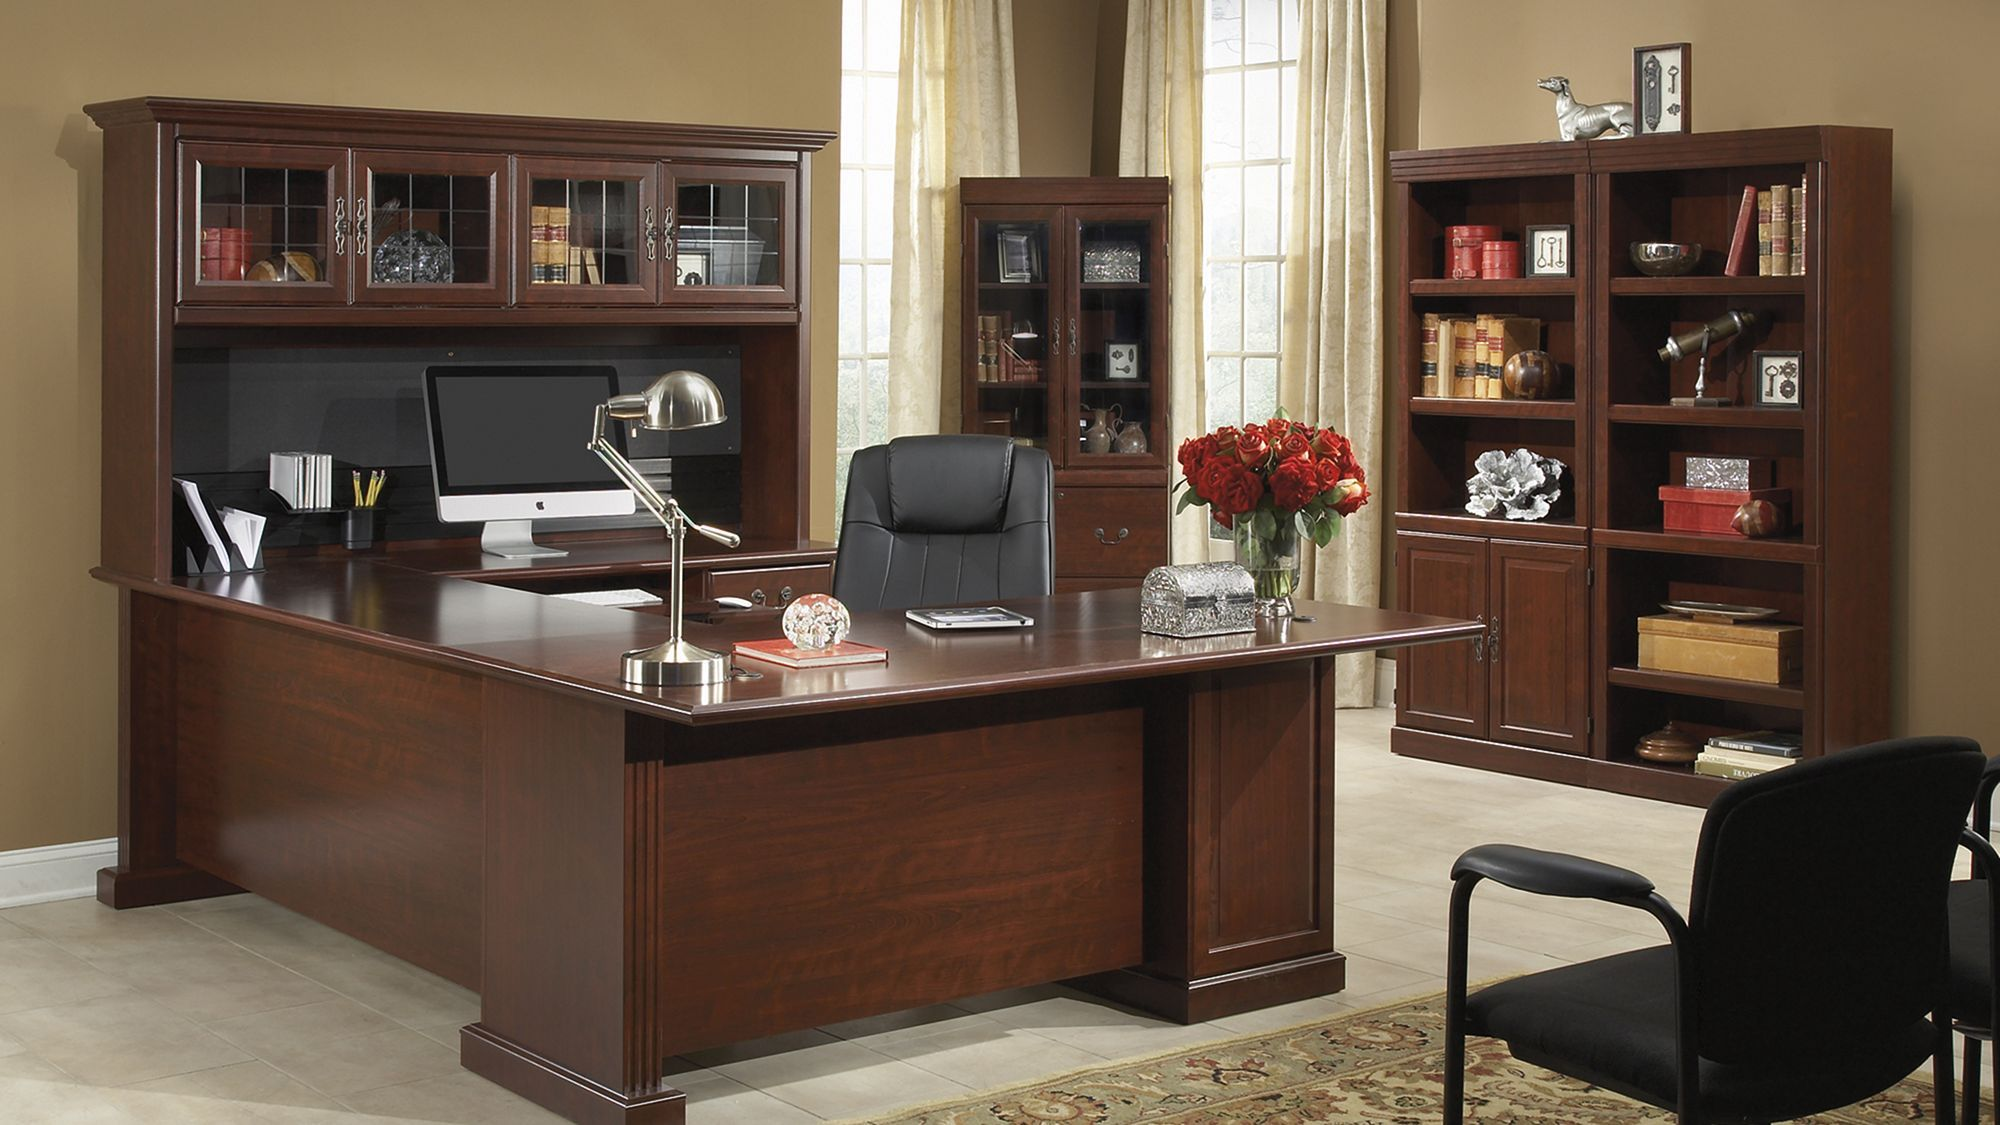 25 Marvelous Home Office Design Furniture For A Comfortable Workplace Teracee Home Office Furniture Sets Office Furniture Design Home Office Furniture